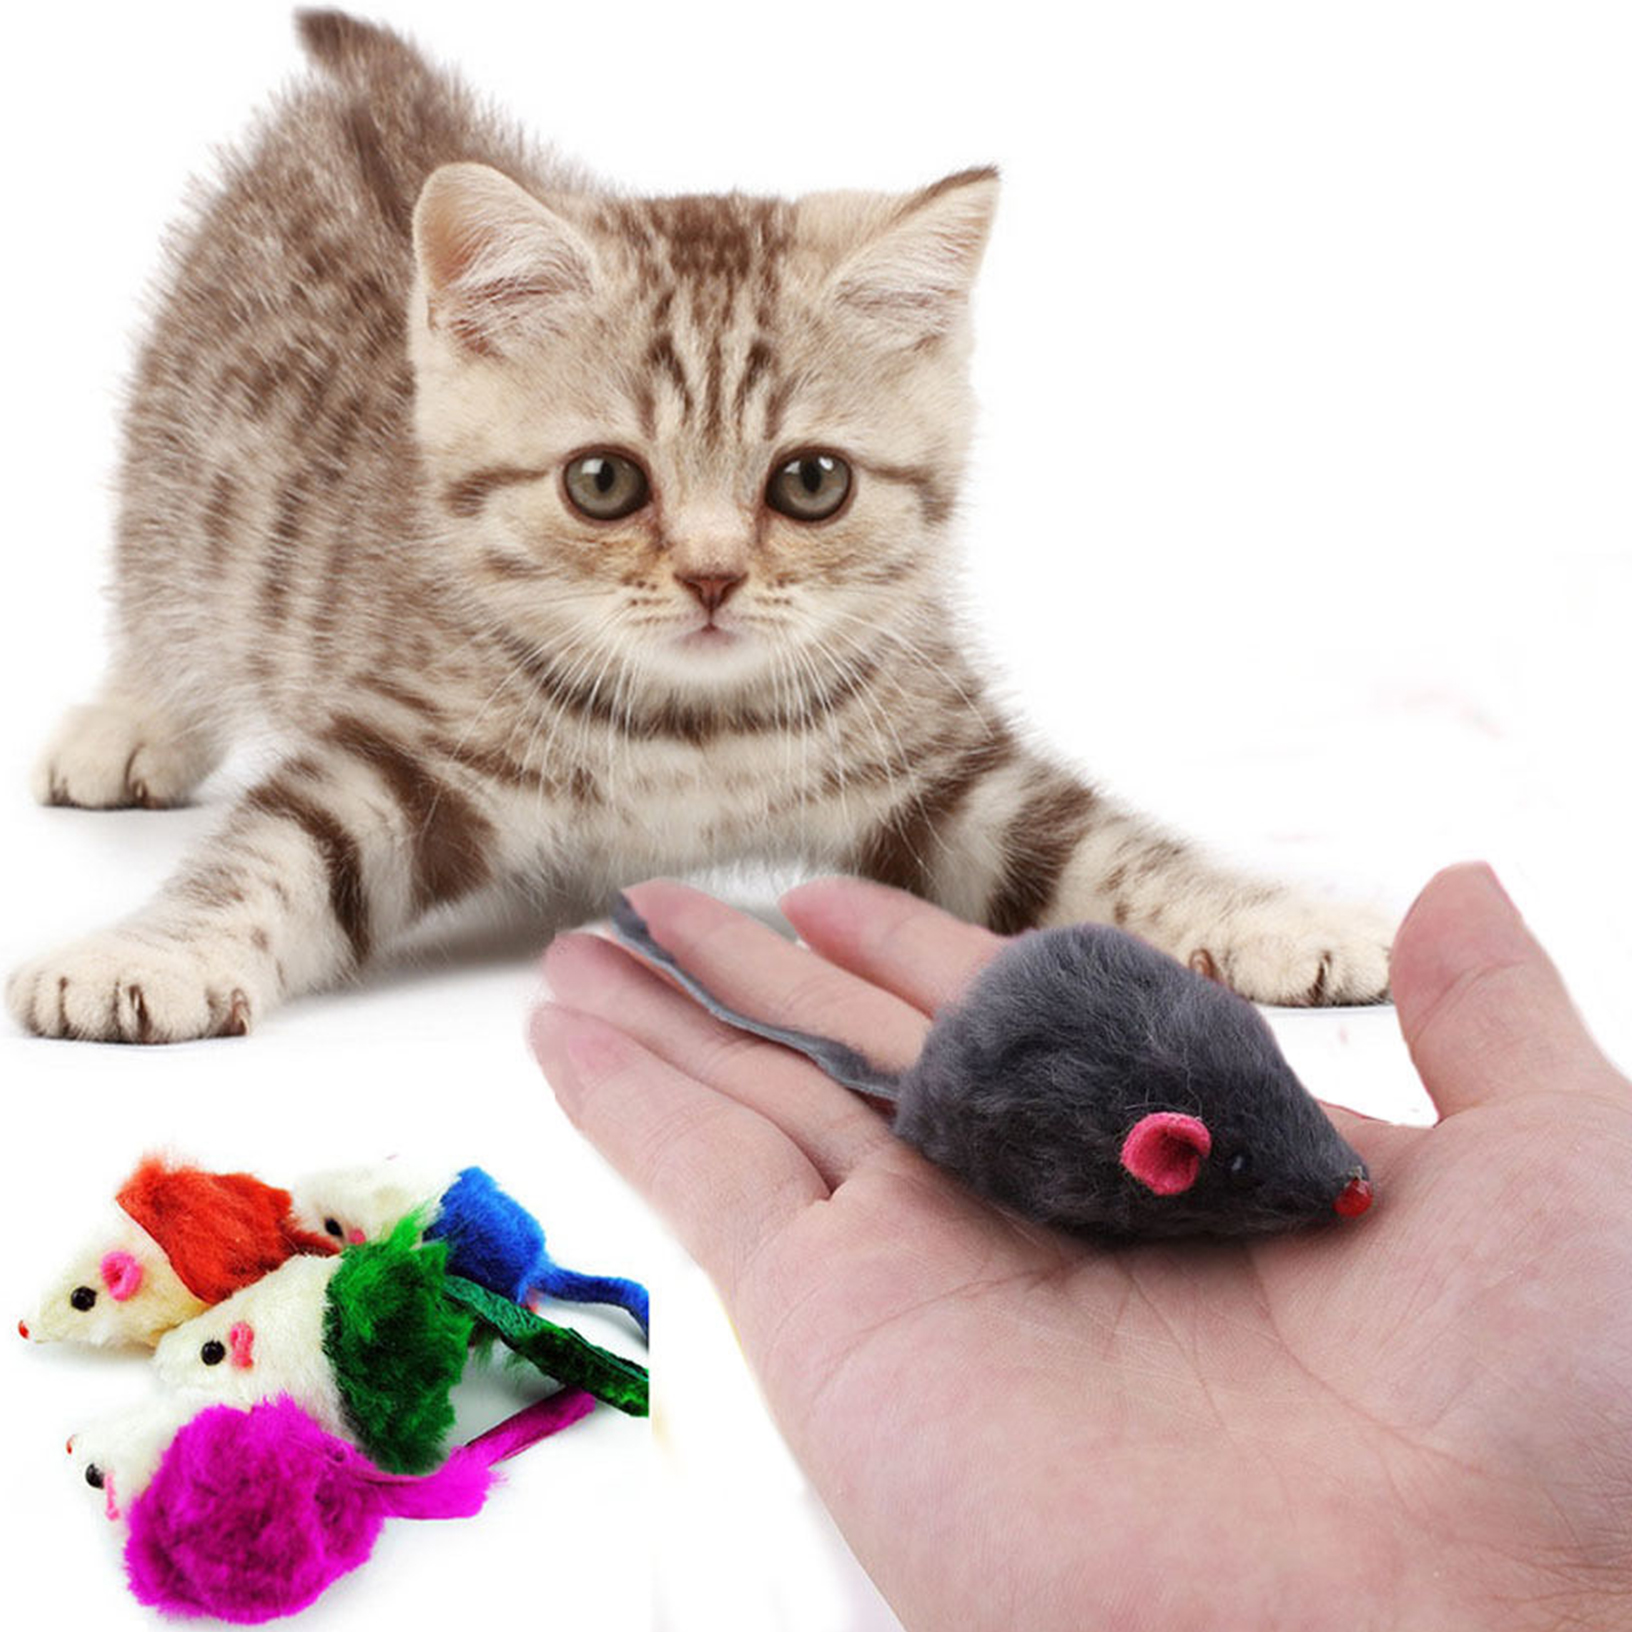 10pcs couleur fausse souris en peluche jouets pour animaux chat chaton toys ebay. Black Bedroom Furniture Sets. Home Design Ideas